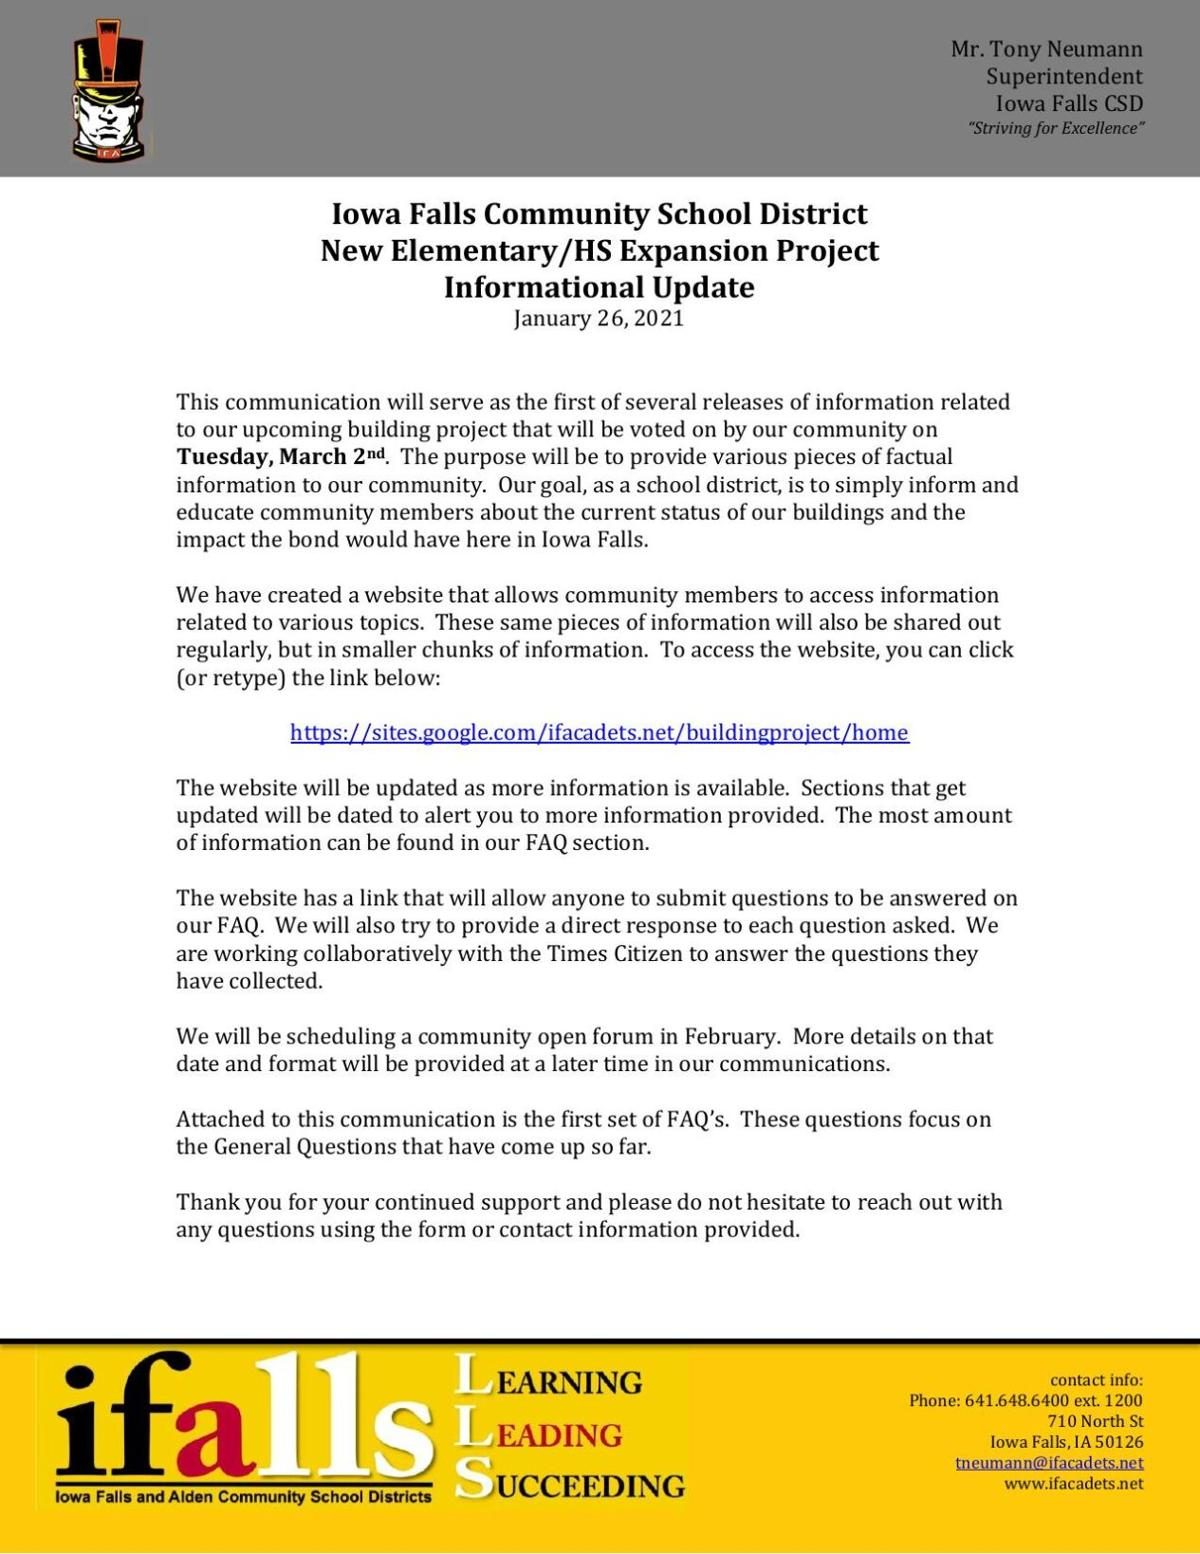 Iowa Falls School Bond Update #1 - Jan. 26, 2021